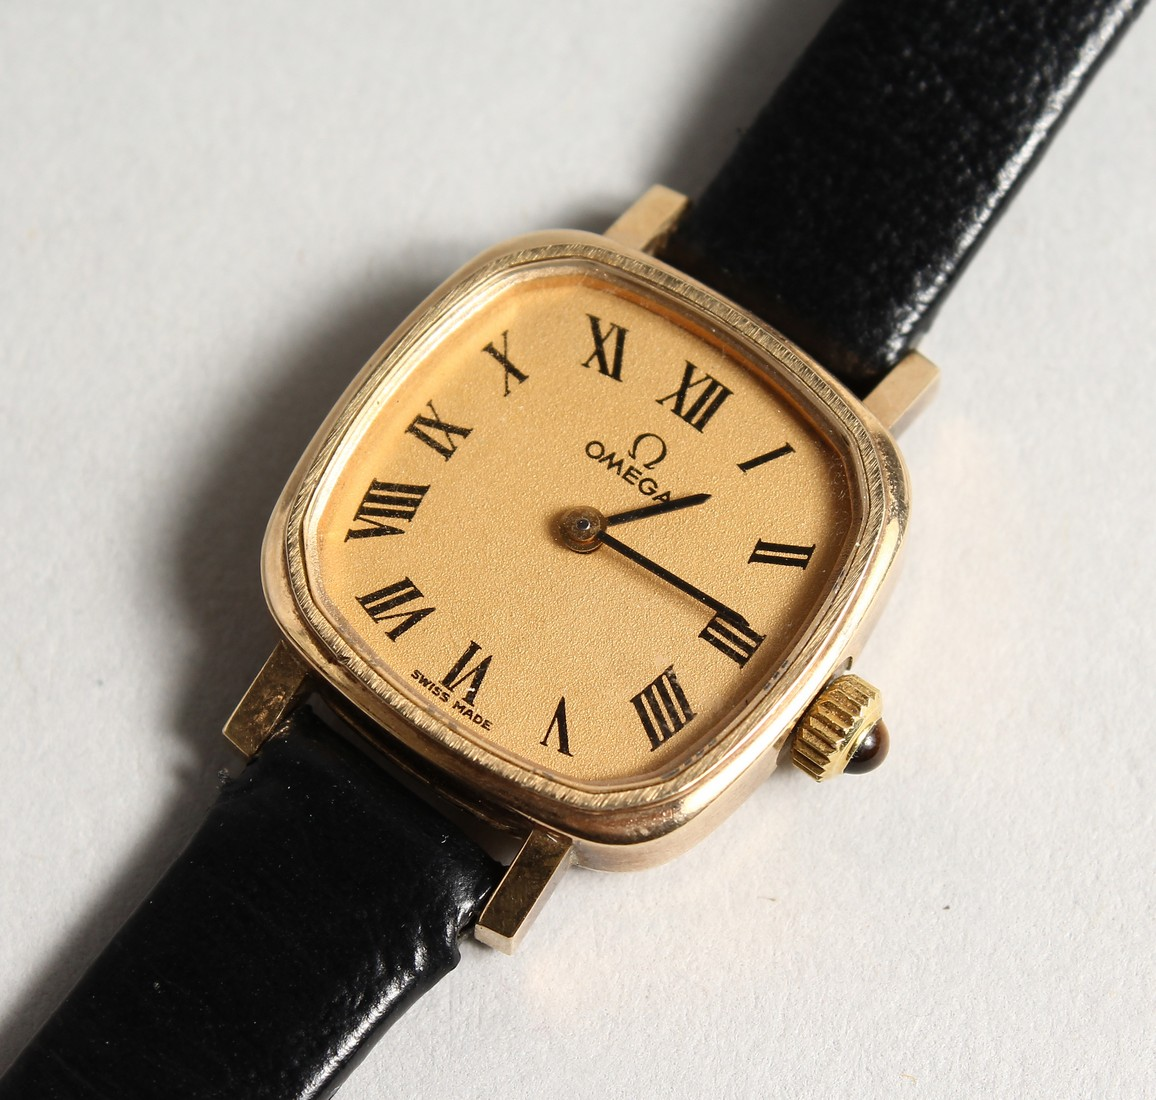 A LADIES VERY GOOD GOLD OMEGA WRIST WATCH with leather strap.